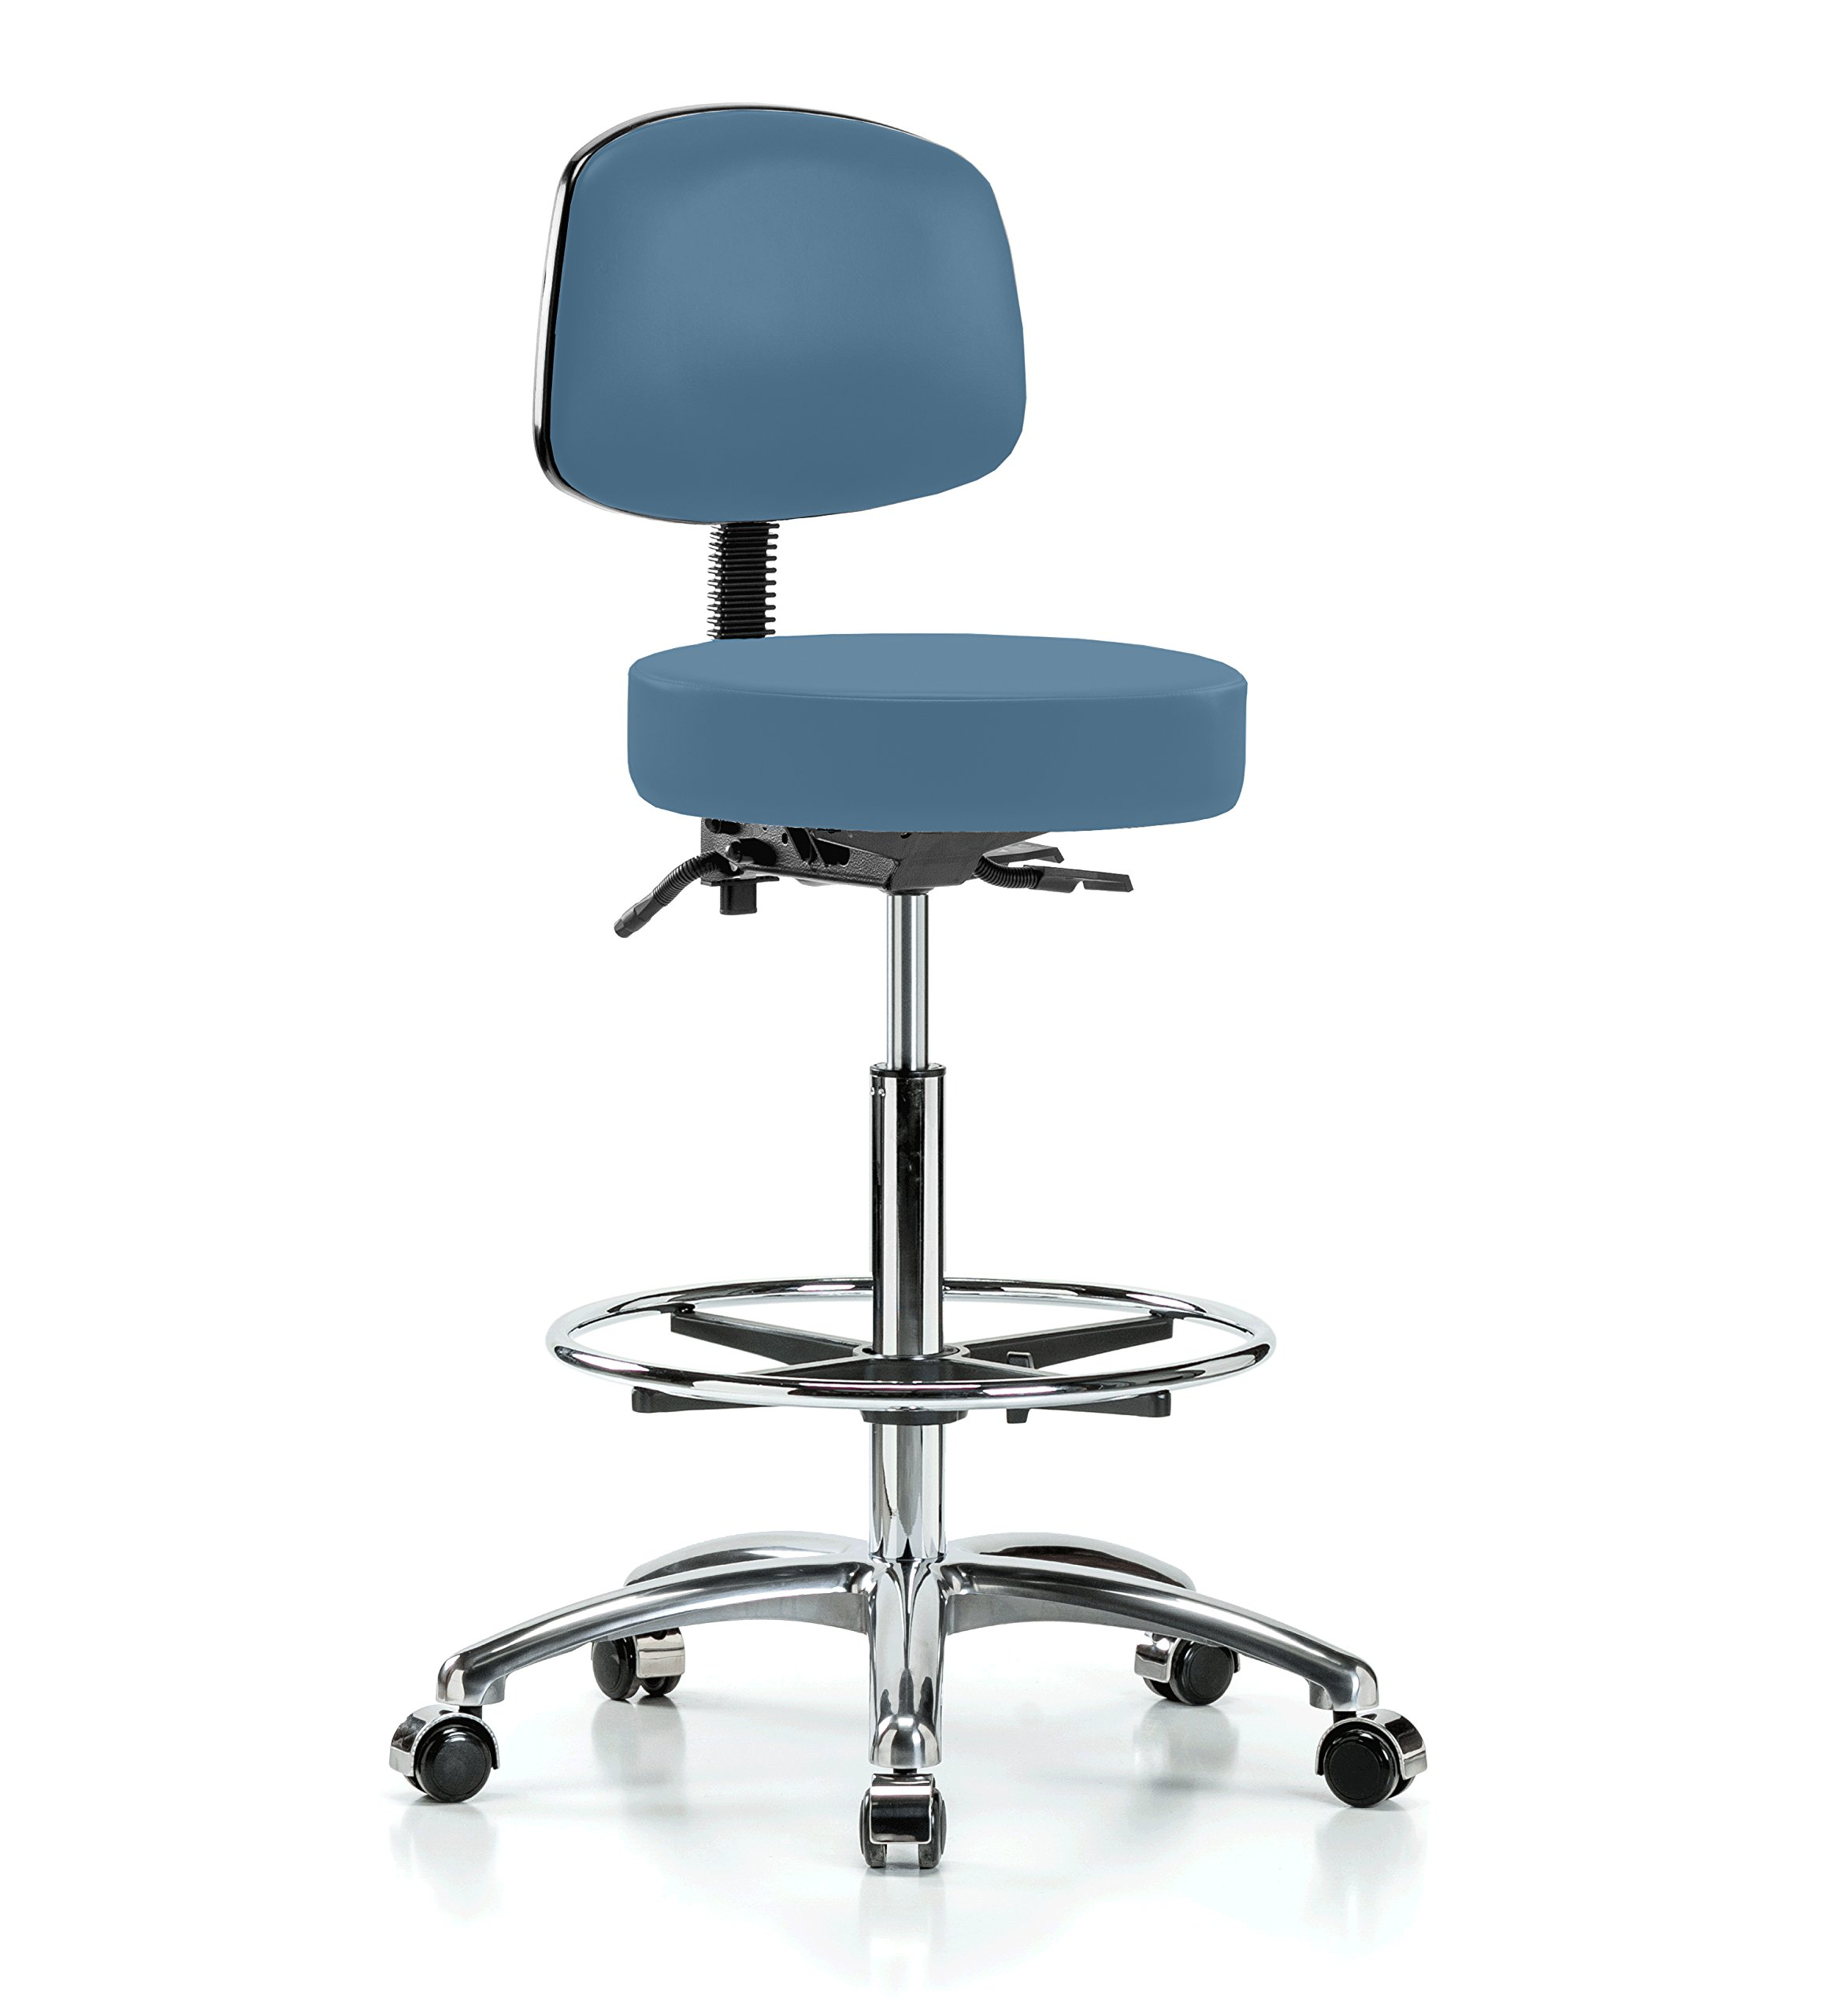 Perch Chrome Walter Rolling Doctor Stool with Footring and Adjustable Back Support for Medical Dental Salon Spa Office or Home 25'' - 35'' (Hard Floor Casters/Colonial Blue Vinyl)